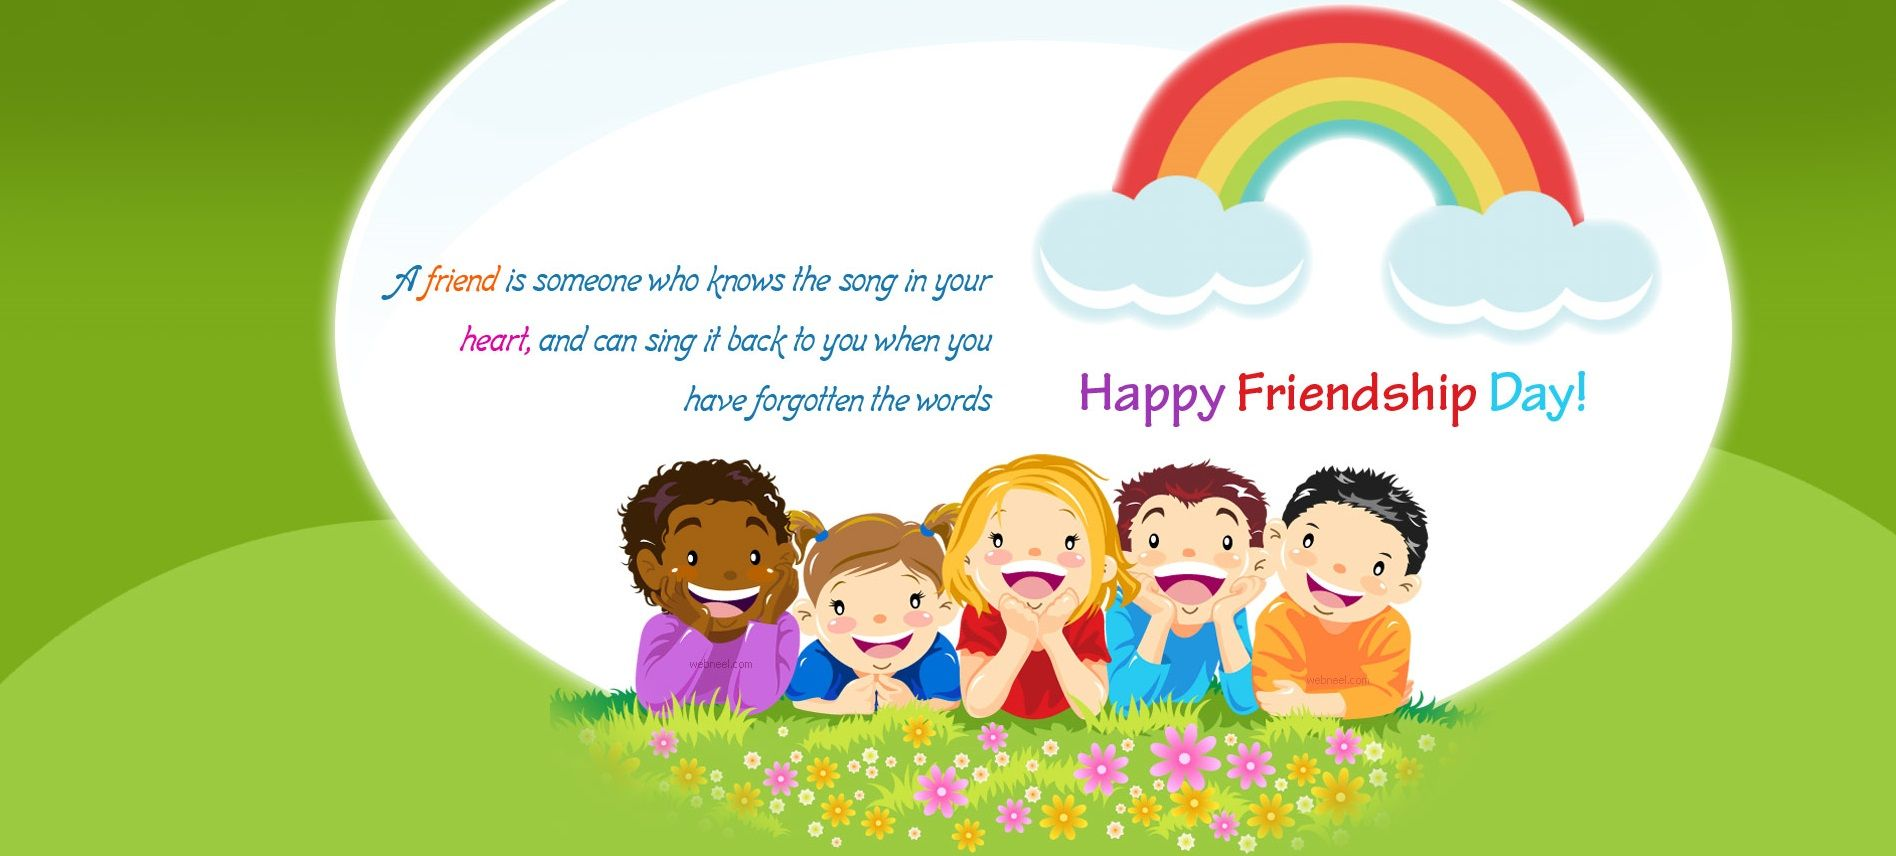 Friendship Day Pictures Friends Forever Friendship Day Pictures